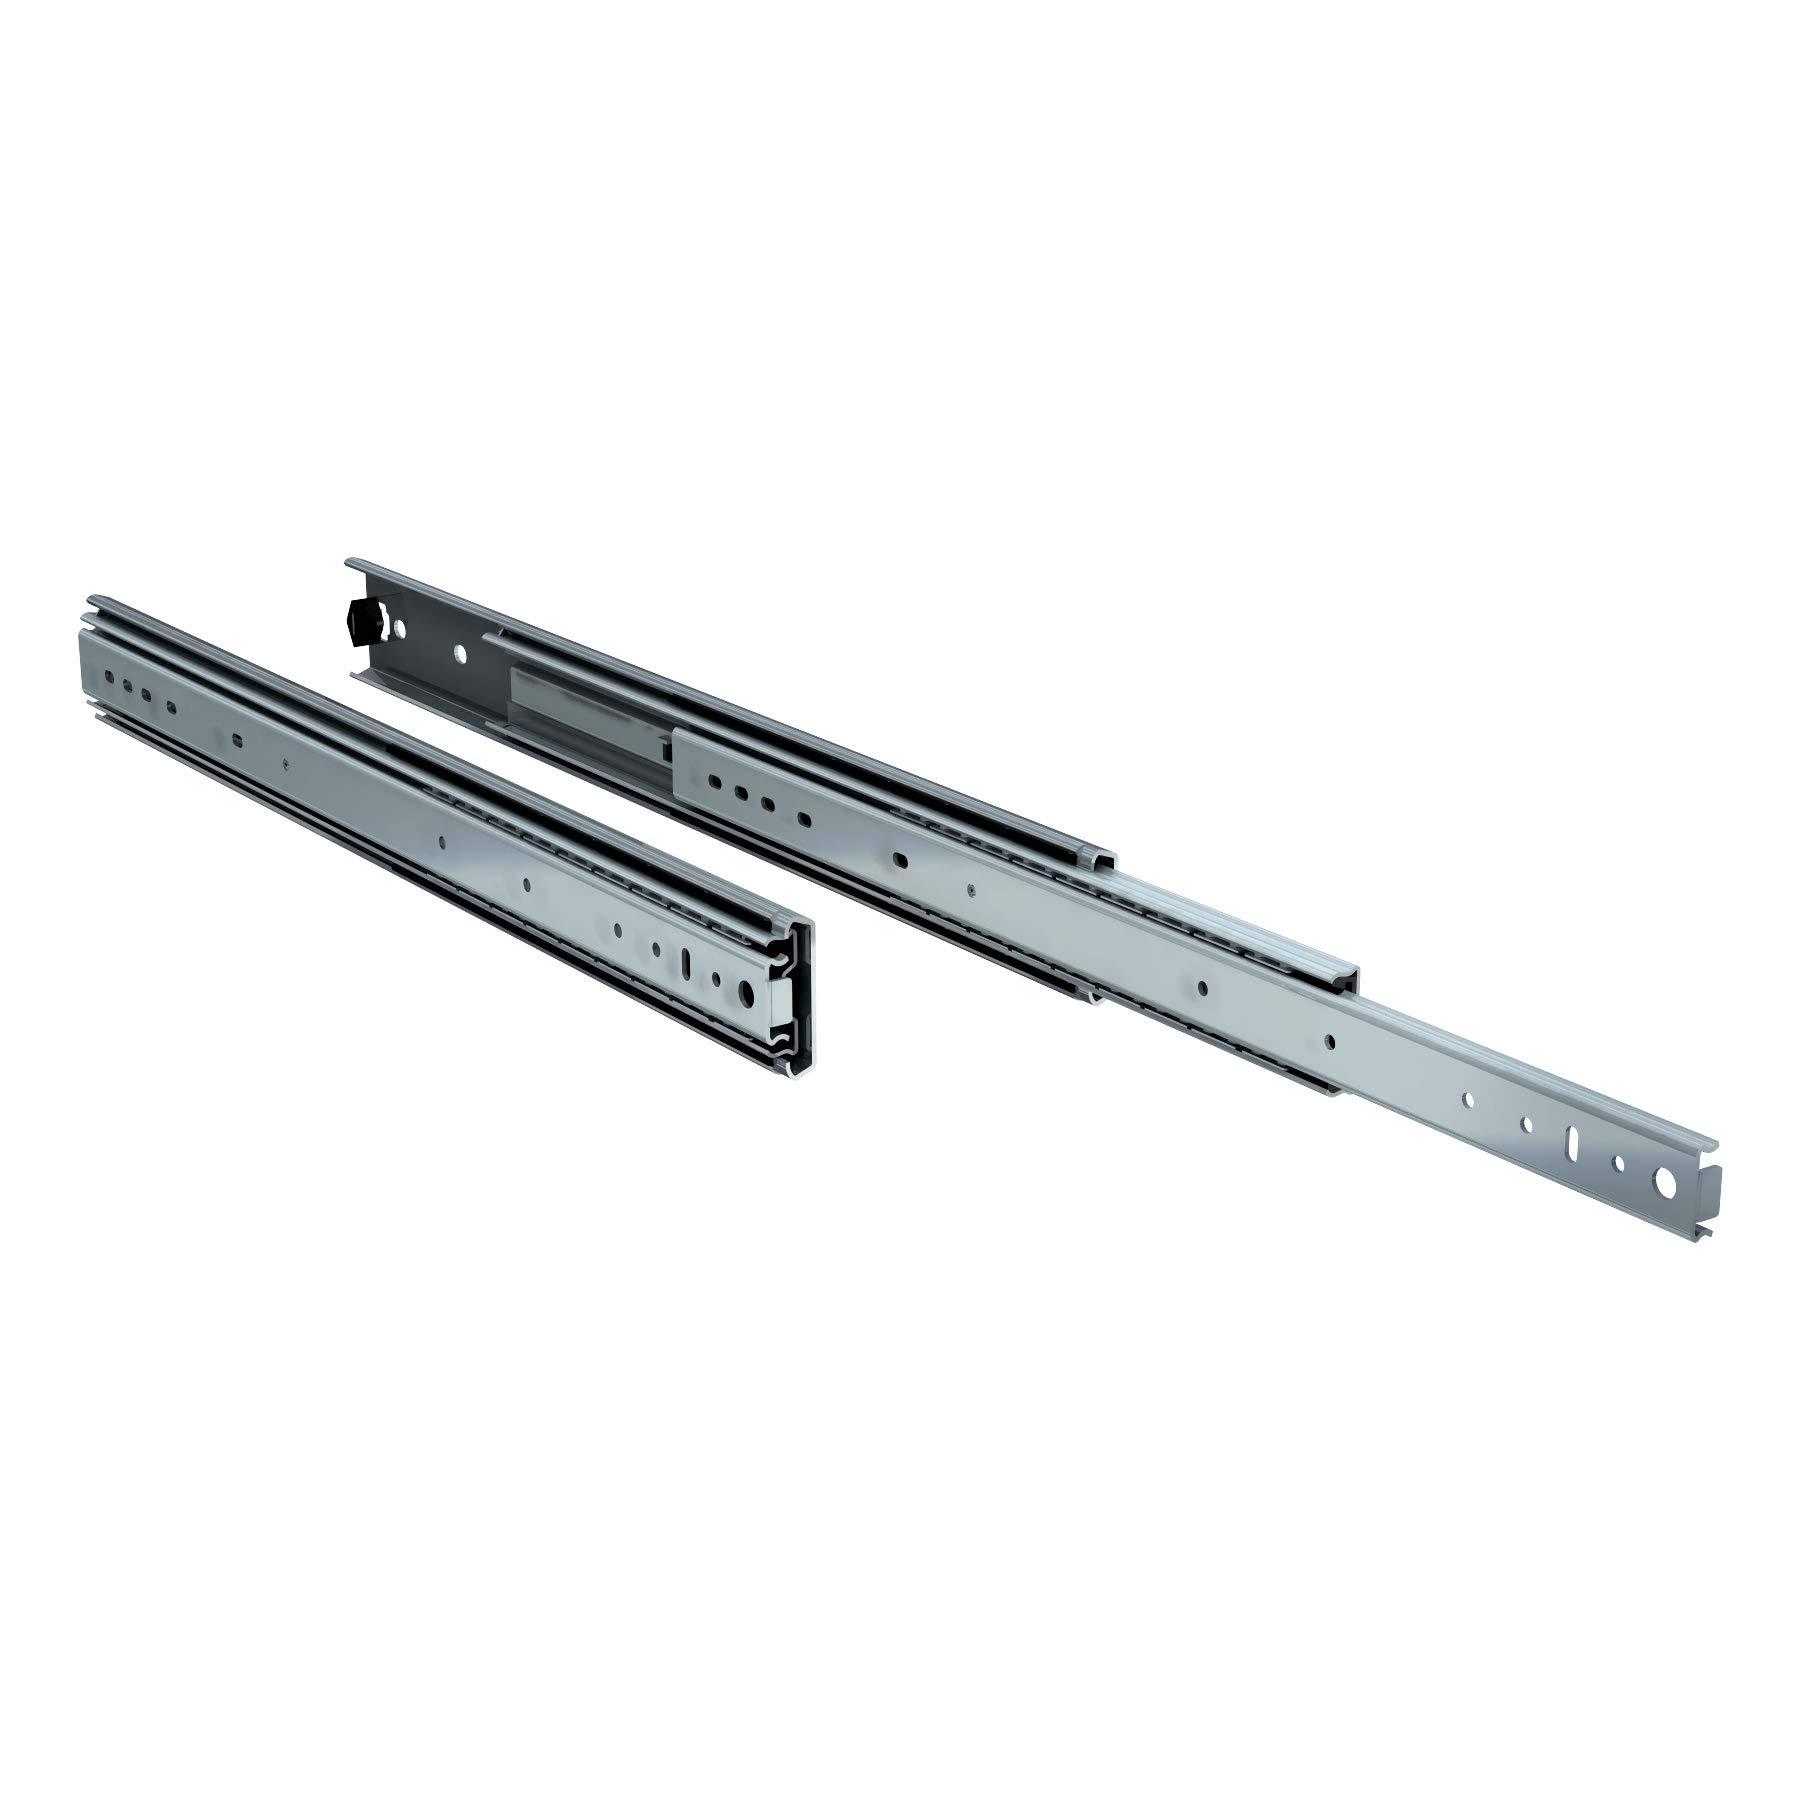 TCH Hardware 2 x 22 inch 250 lb Heavy Duty Steel Drawer Slides - Full Extension with Over Travel Ball Bearing - Kitchen Cabinet Desk Draw